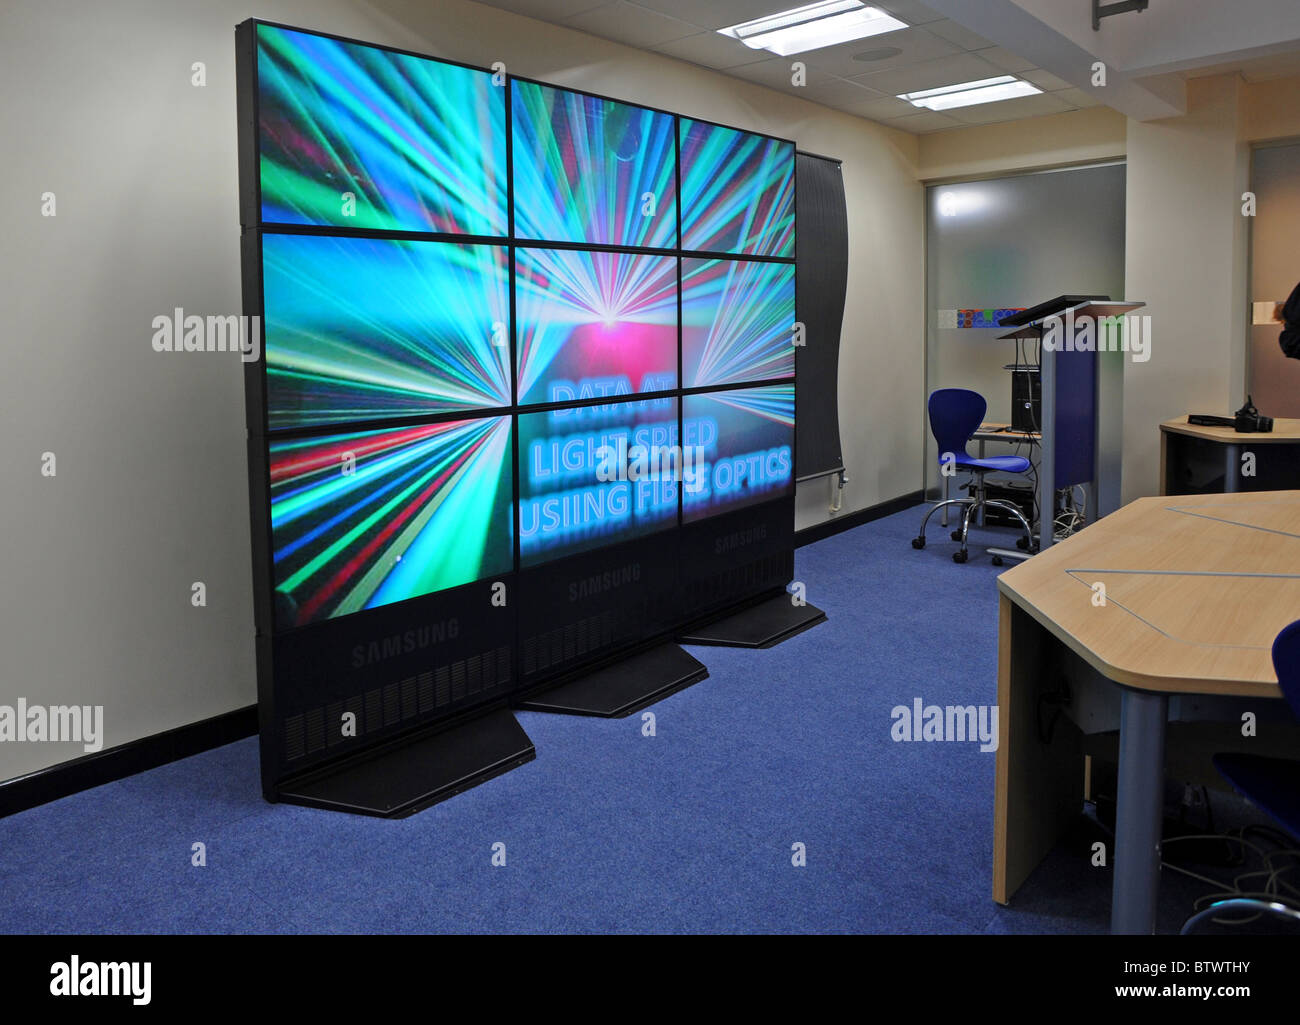 A Samsung video wall - Stock Image